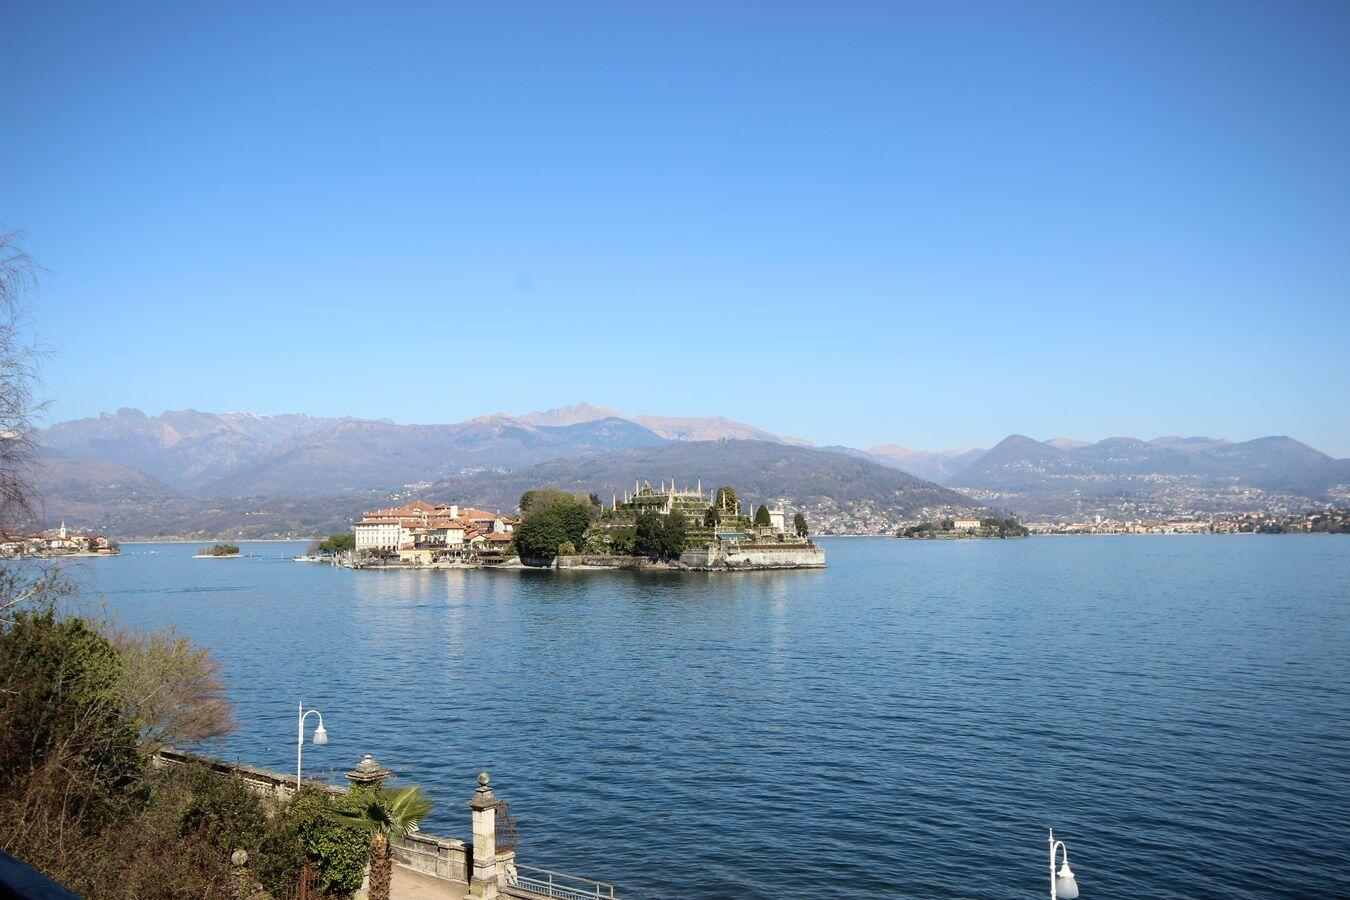 Apartment in front of Maggiore Lake